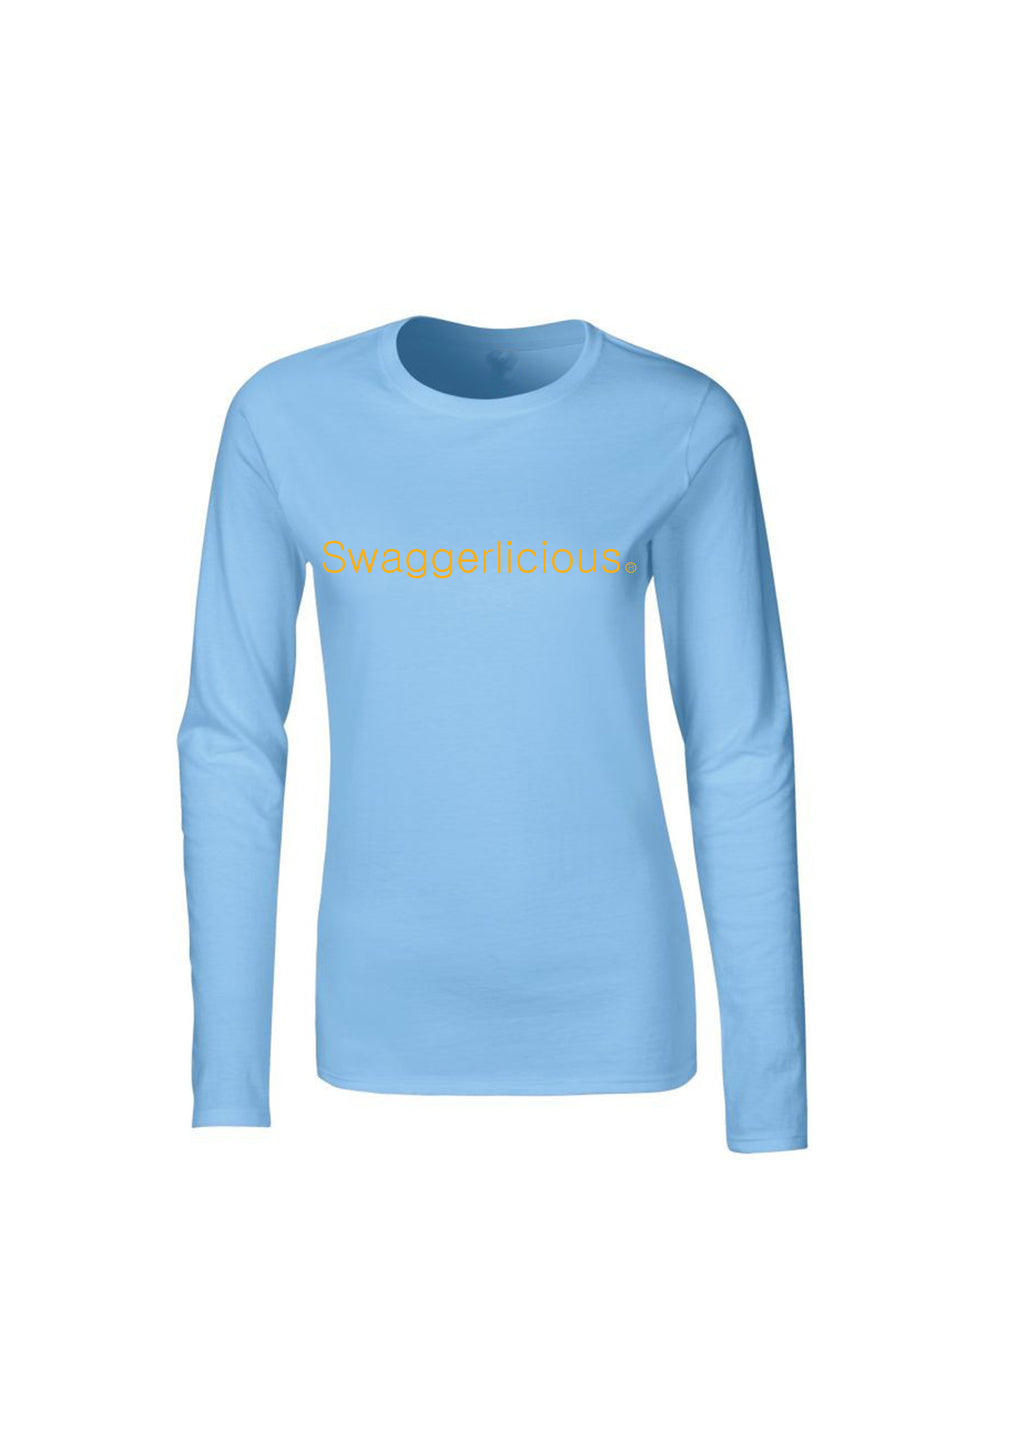 LIGHT BLUE SWAGGERLICIOUS LADIES LONG SLEEVE TOP - swaggerlicious-clothing.com